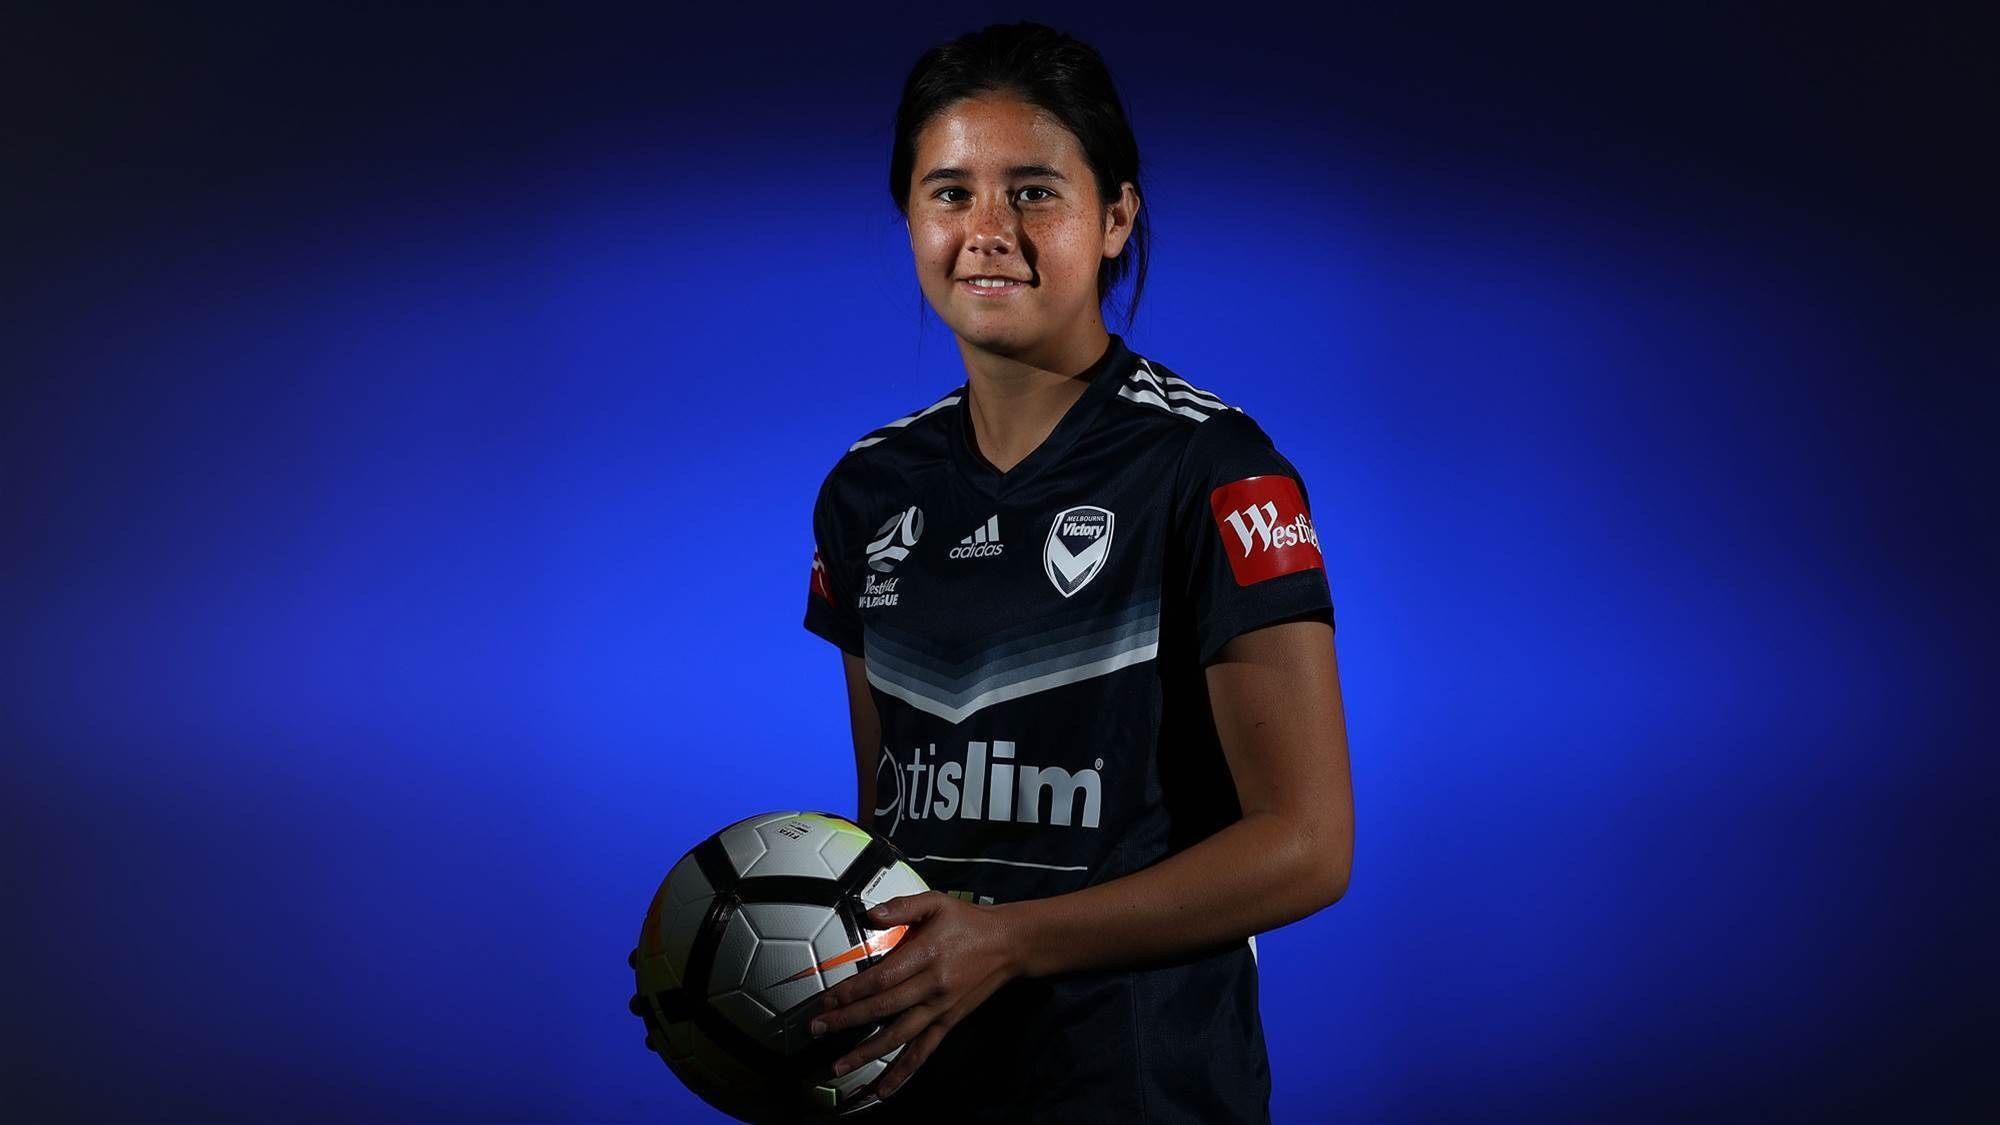 15-year-old's Matildas dream